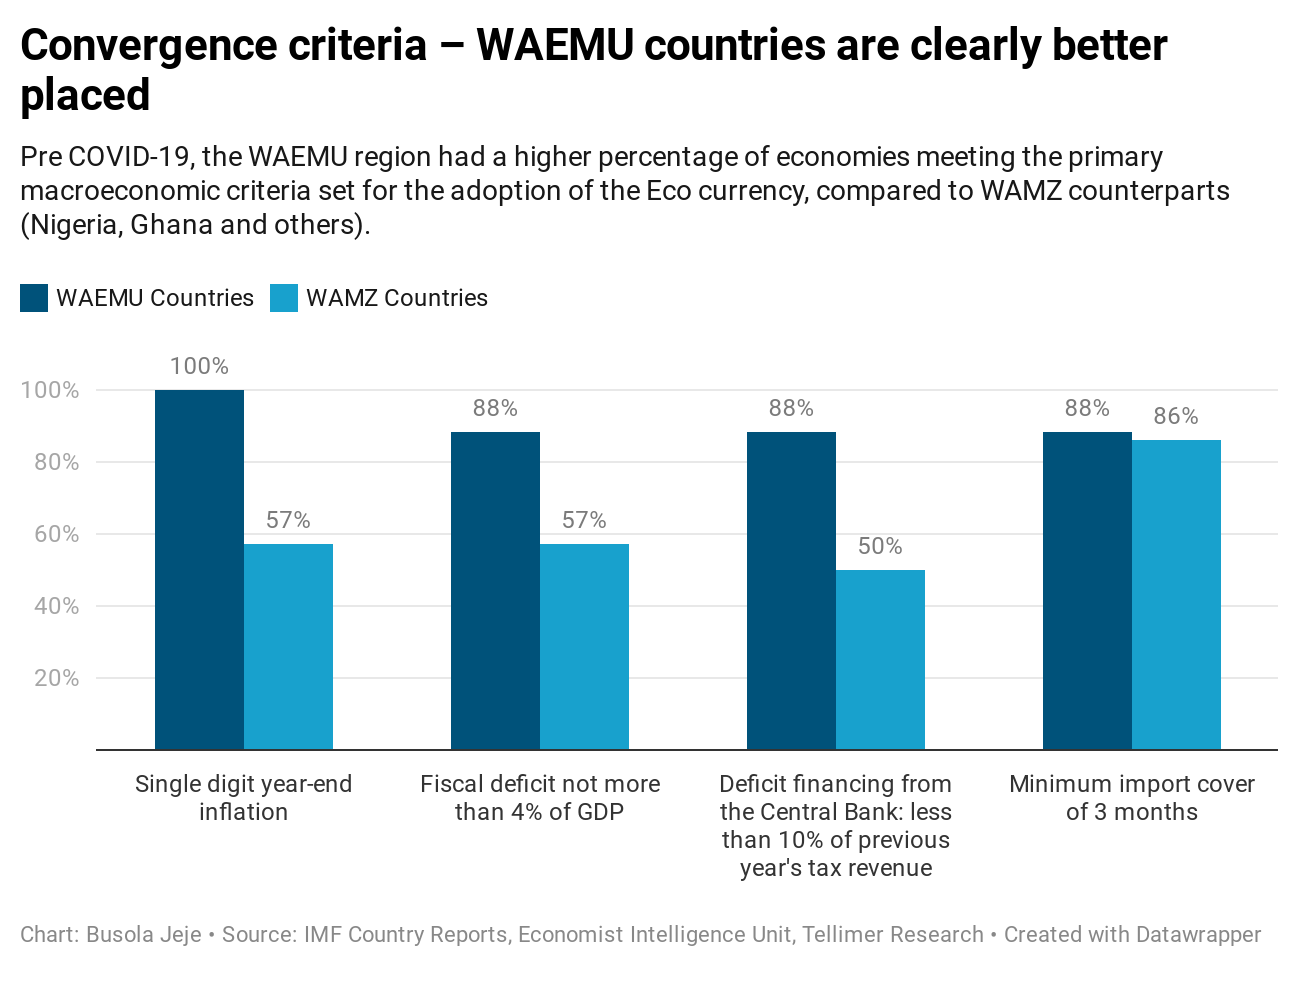 Convergence criteria – WAEMU countries are clearly better placed